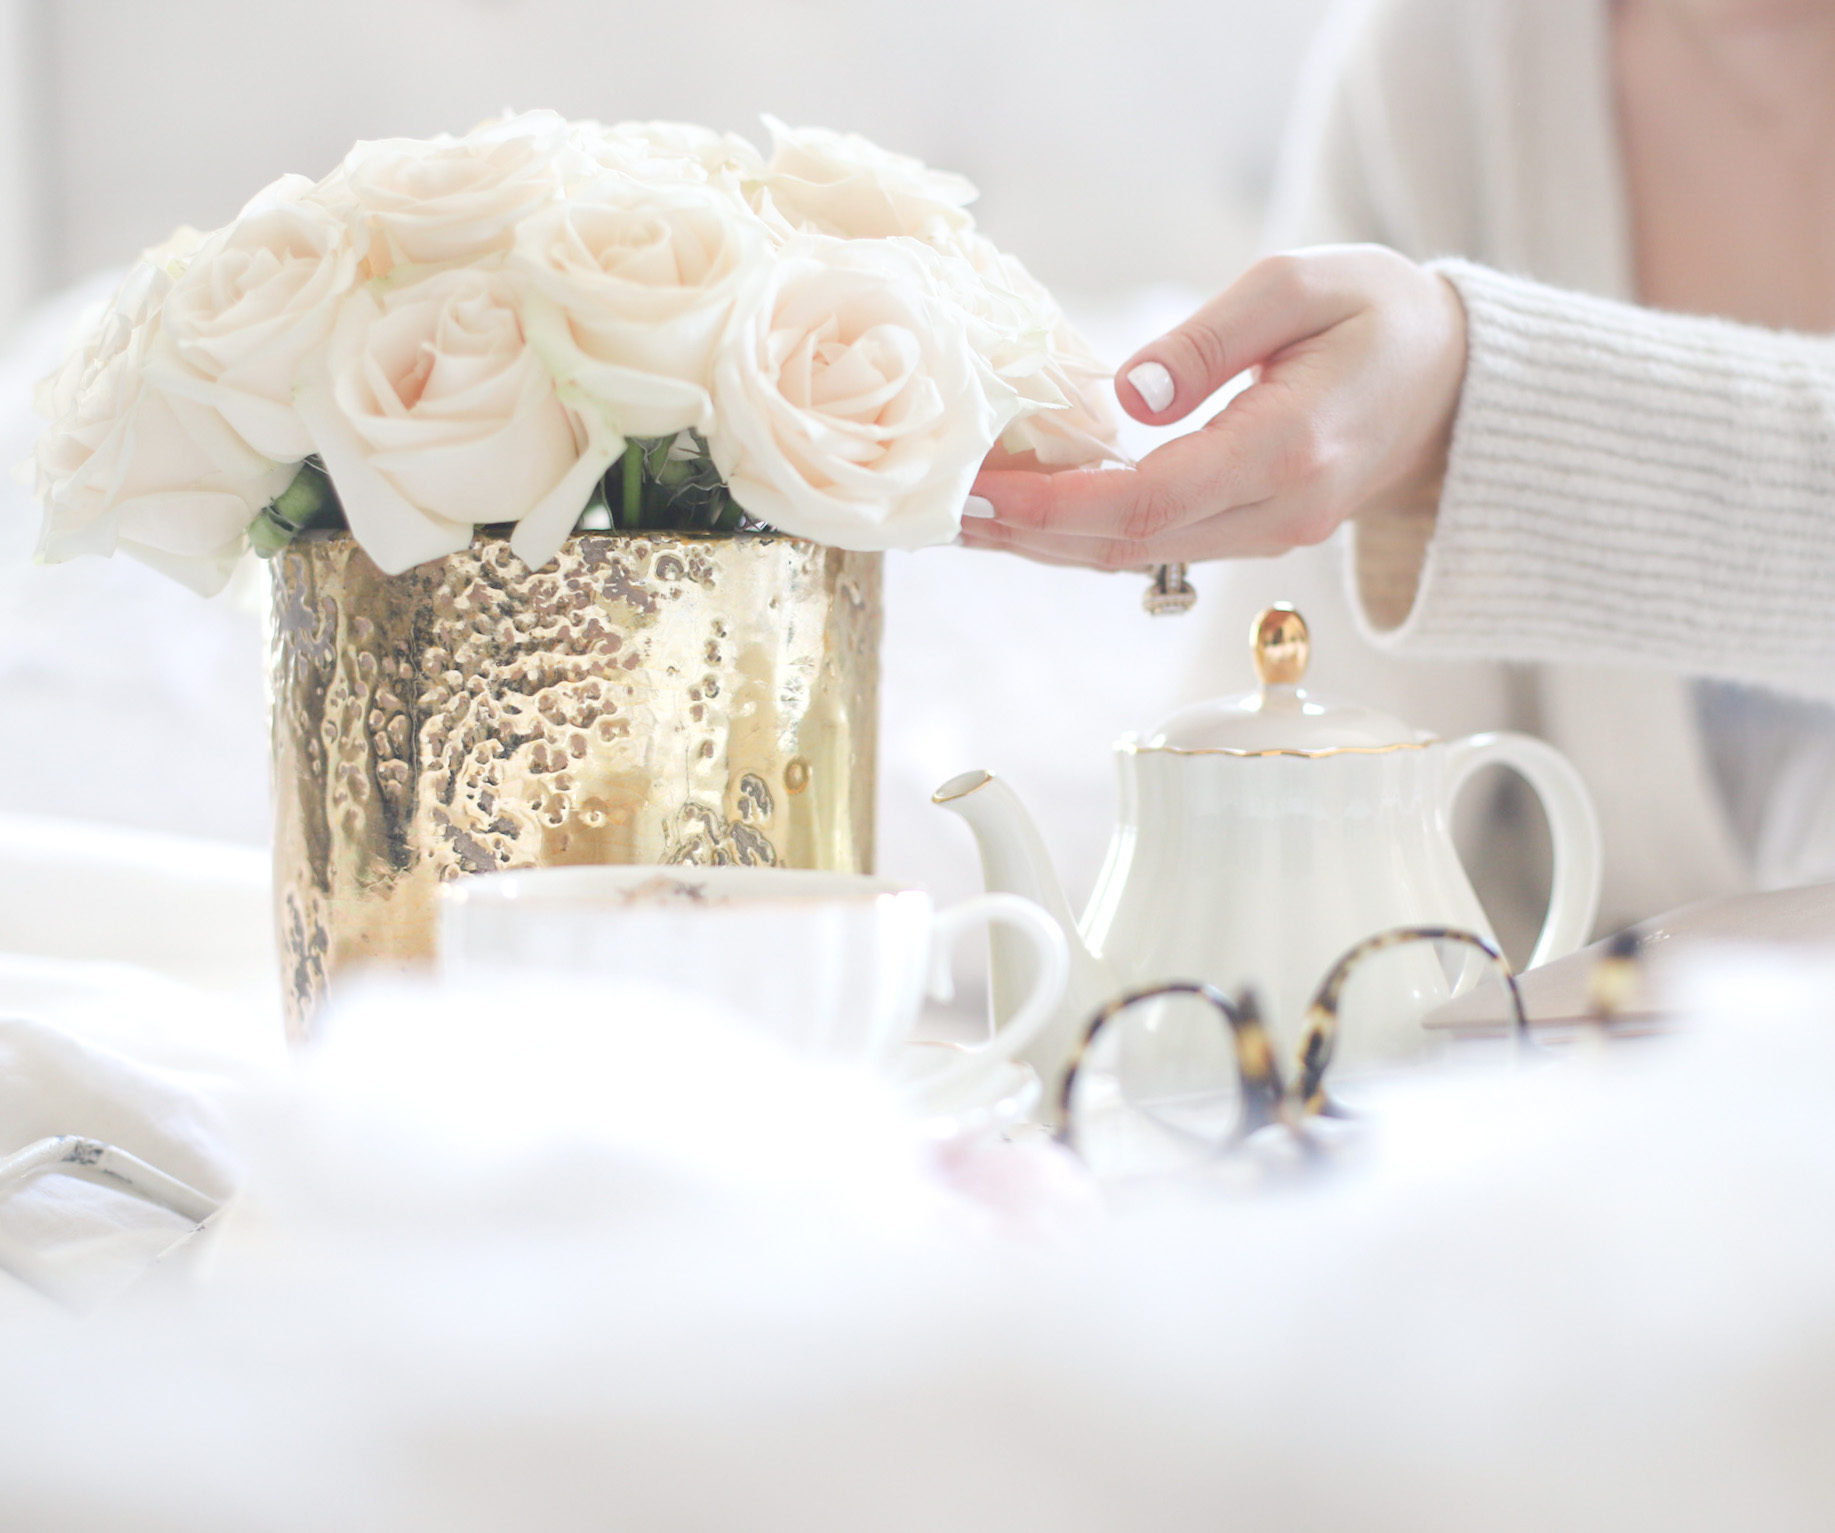 Little Loves Notes, Weekend Packing, Roses and Tea - GLITTERINC.COM